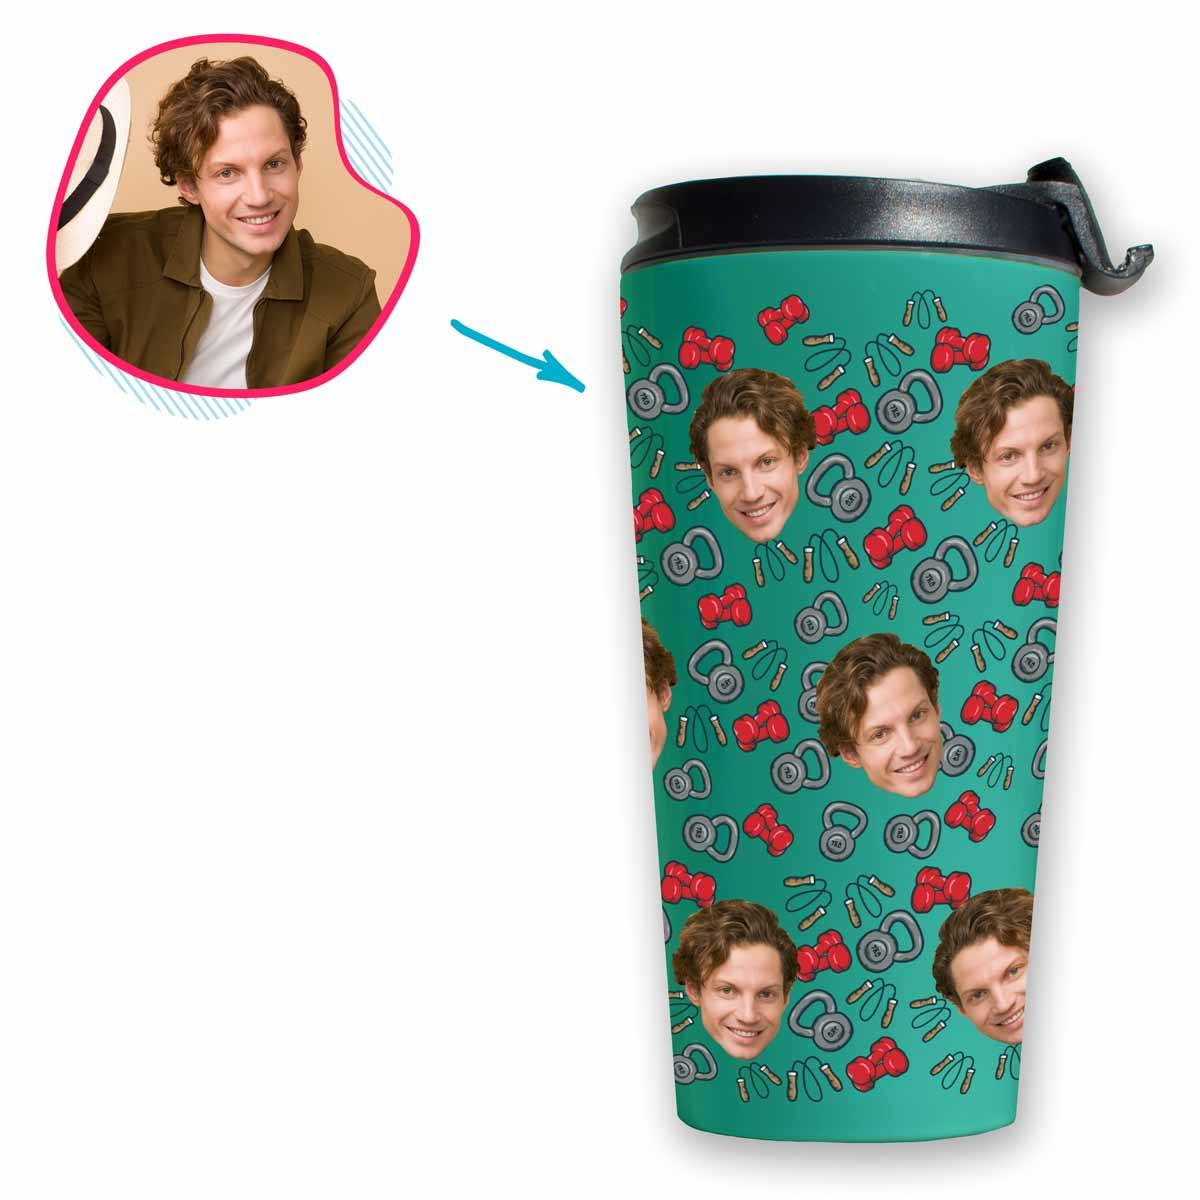 mint Gym & Fitness travel mug personalized with photo of face printed on it